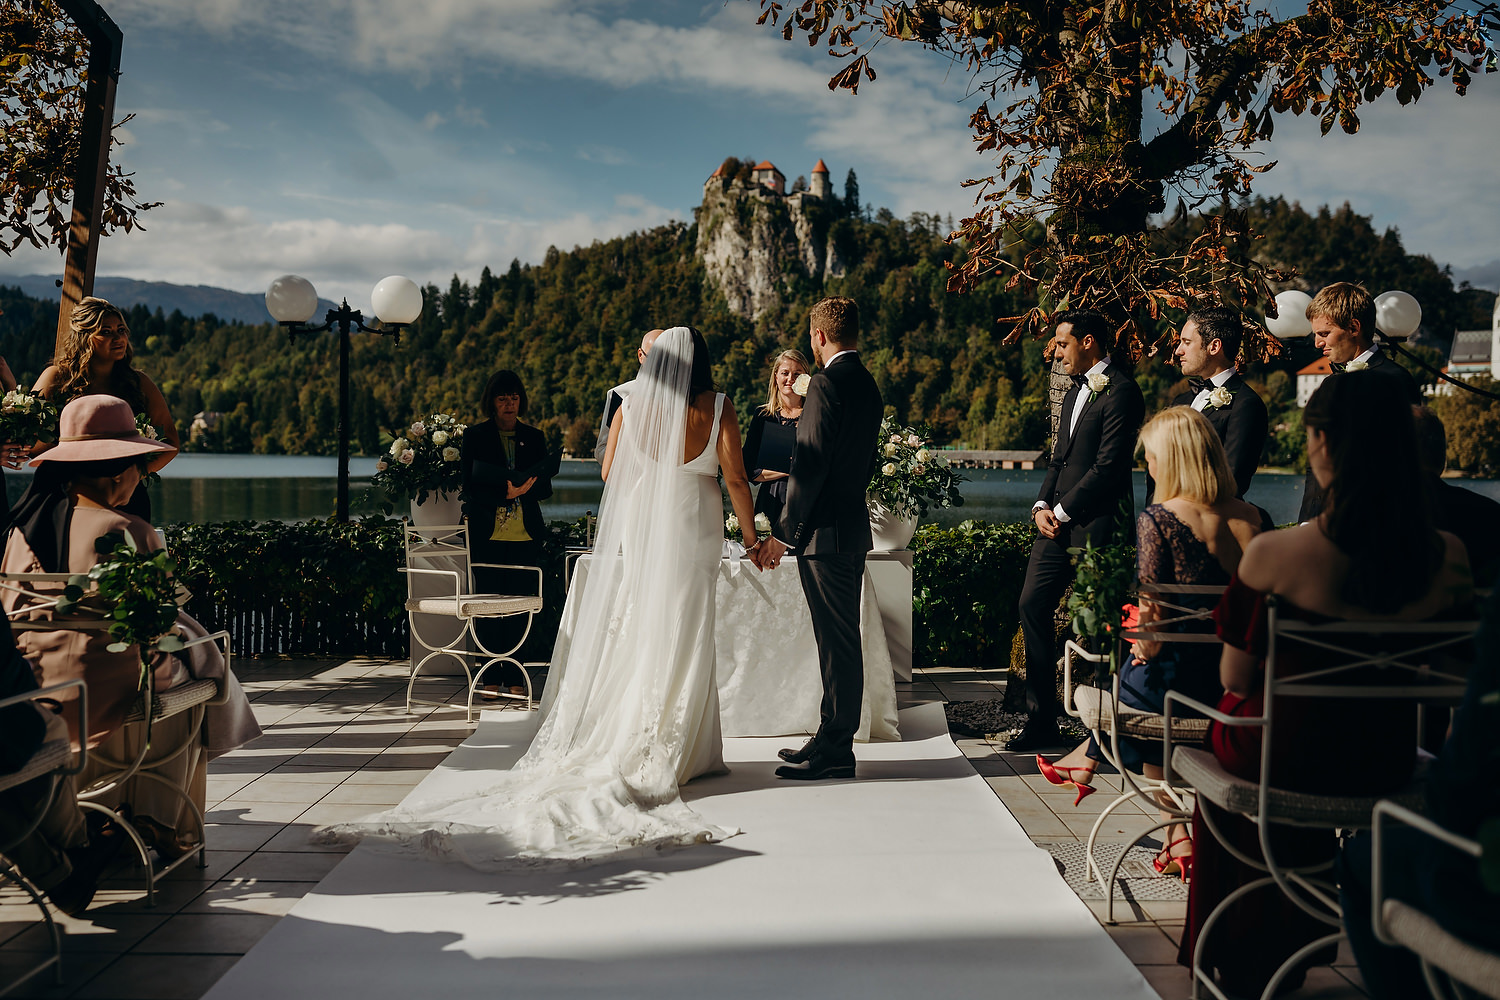 Lake Wedding in Slovenia